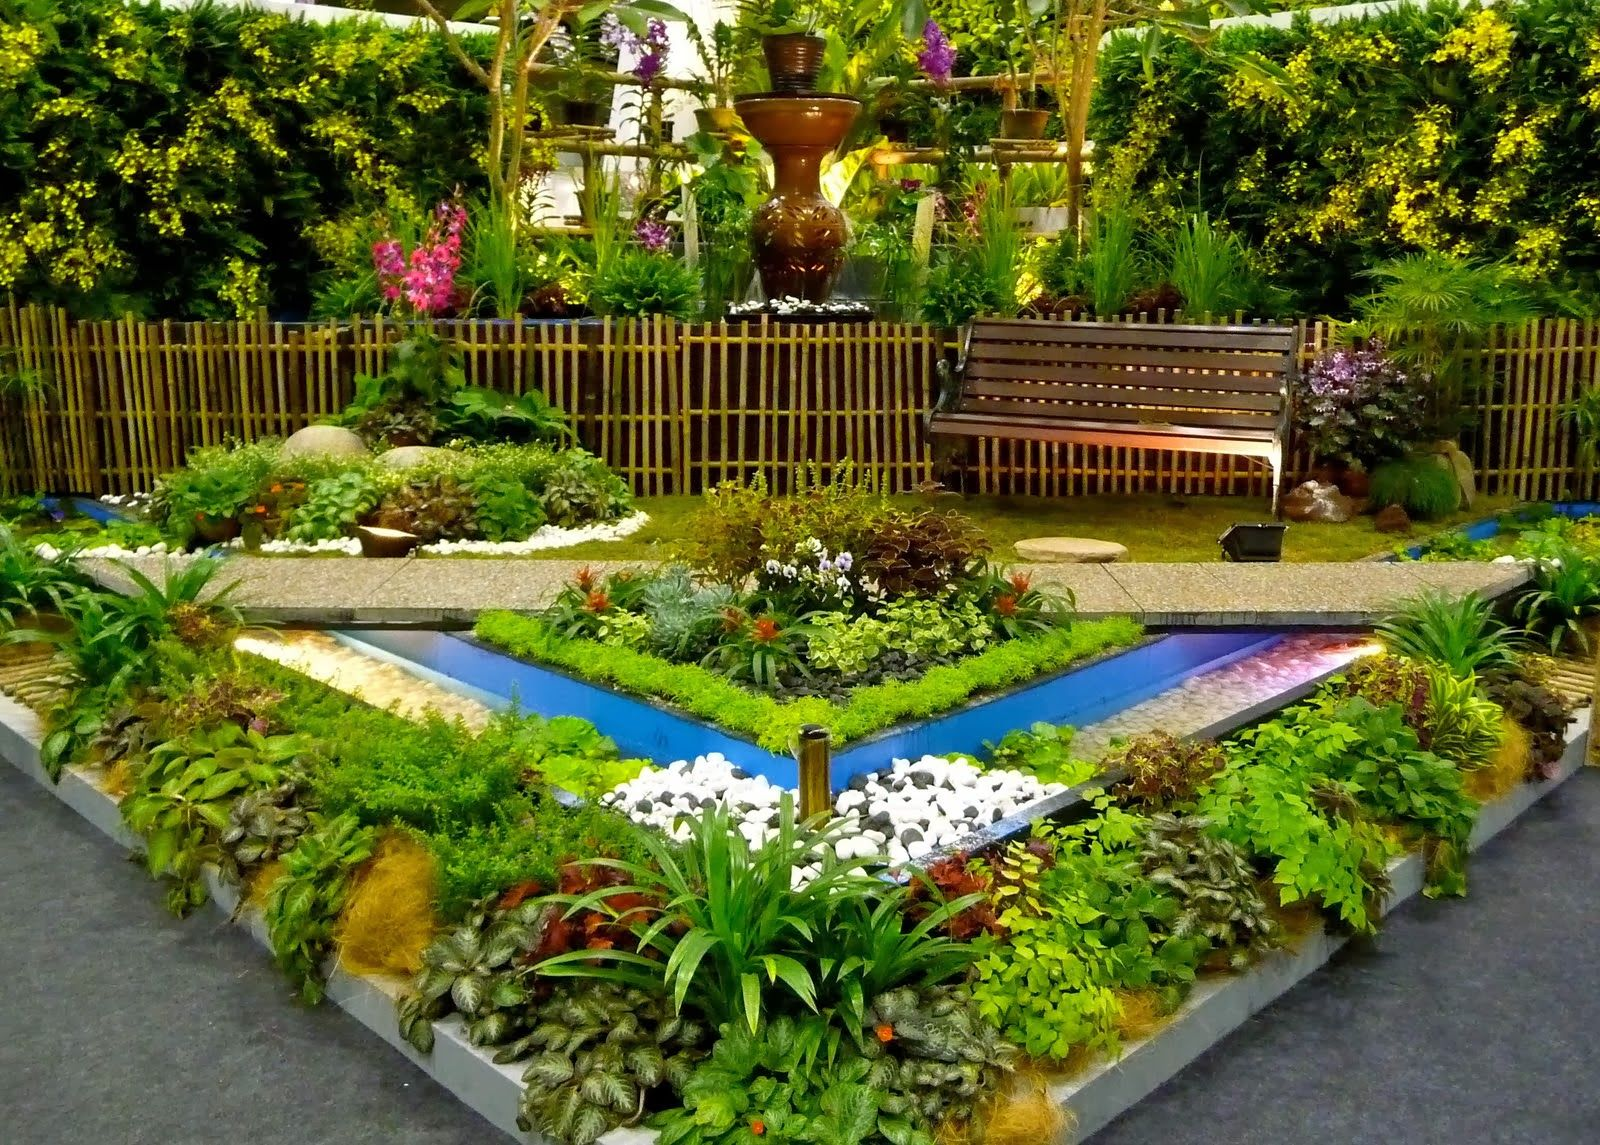 Best landscaping ideas i have ever seen wow design for In the garden landscape and design